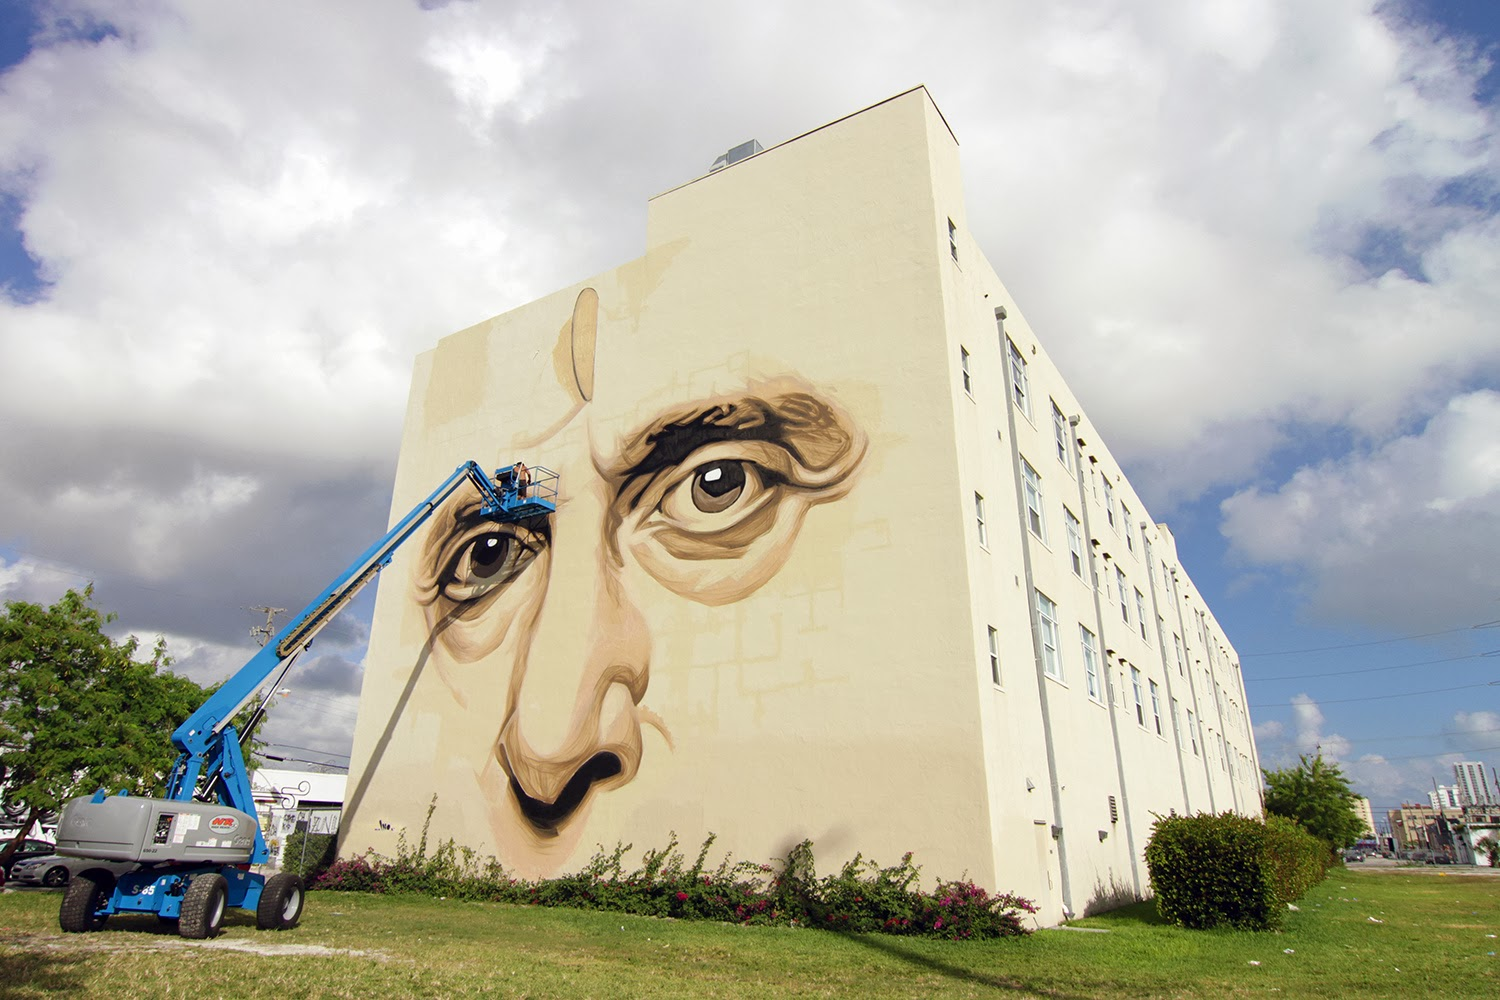 ino-in-heaven-with-you-new-mural-in-wynwood-miami-03